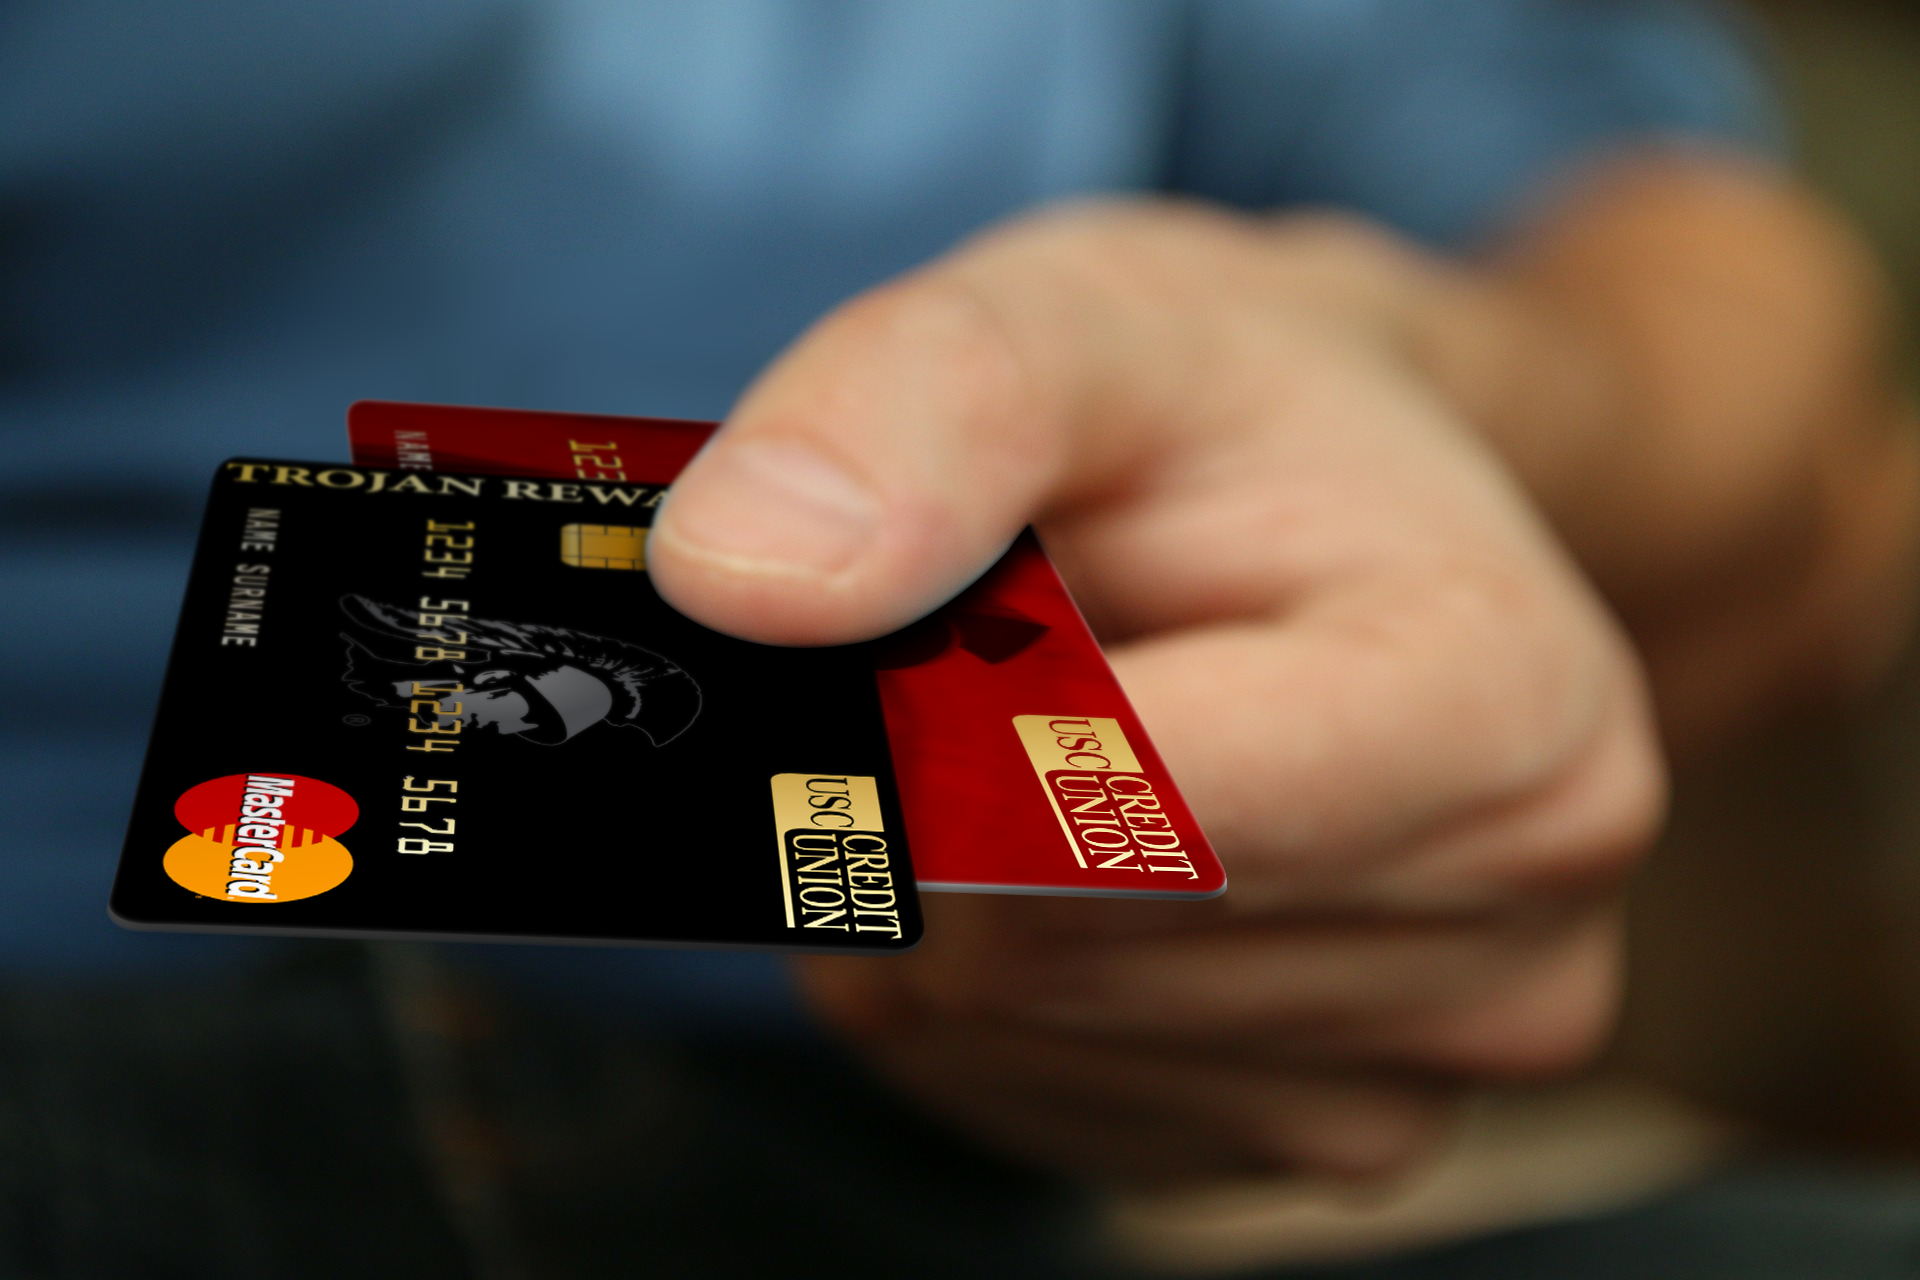 Credit Cards Photo Mockup-3